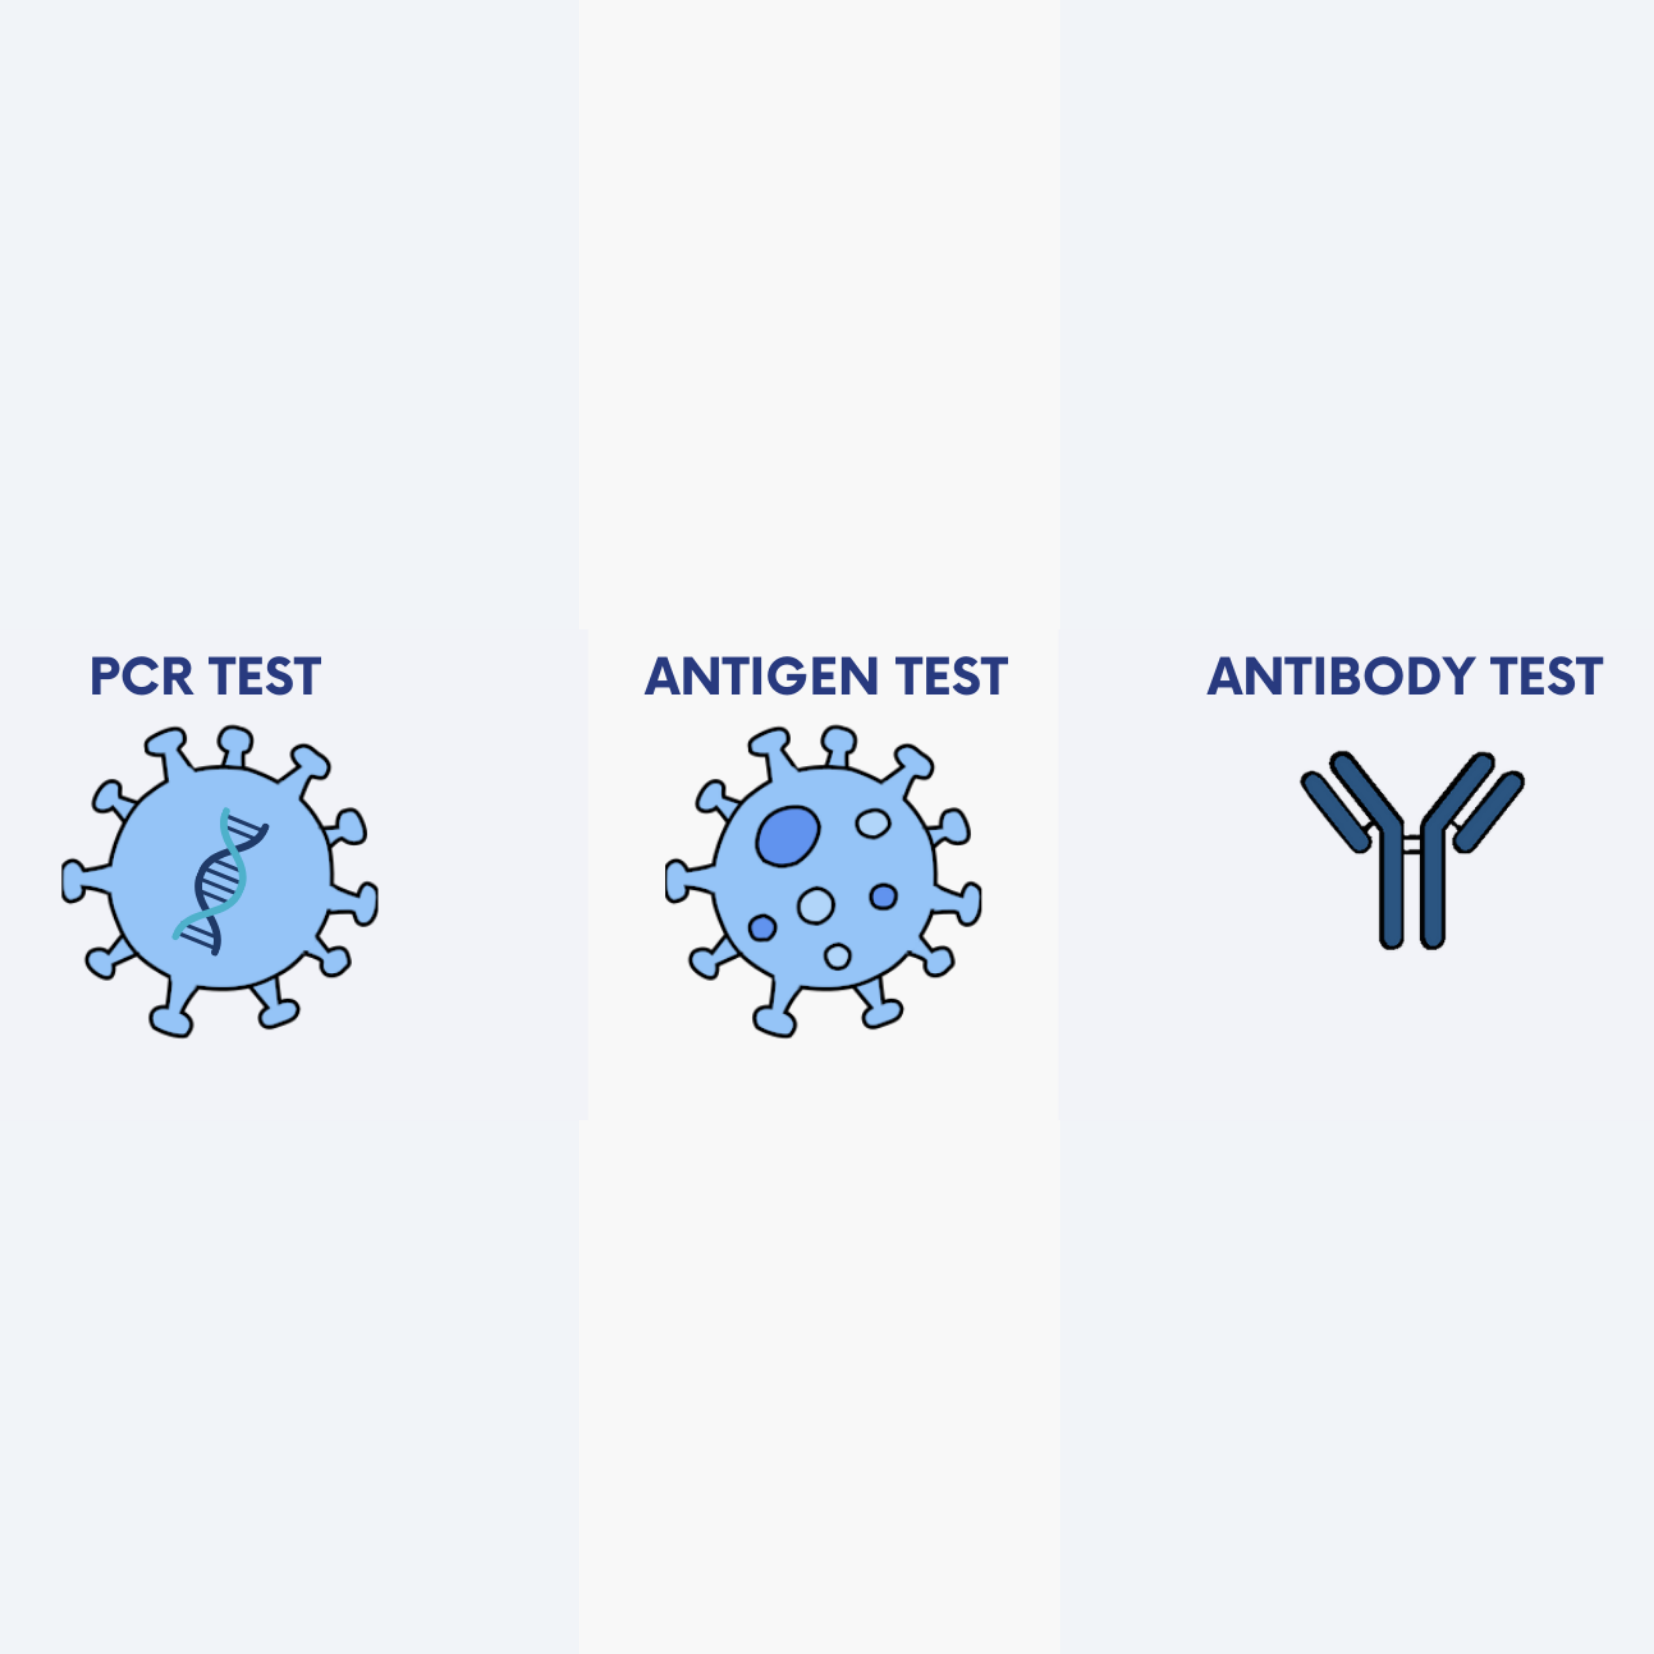 Antigen, Antibody or PCR tests: What is the difference?